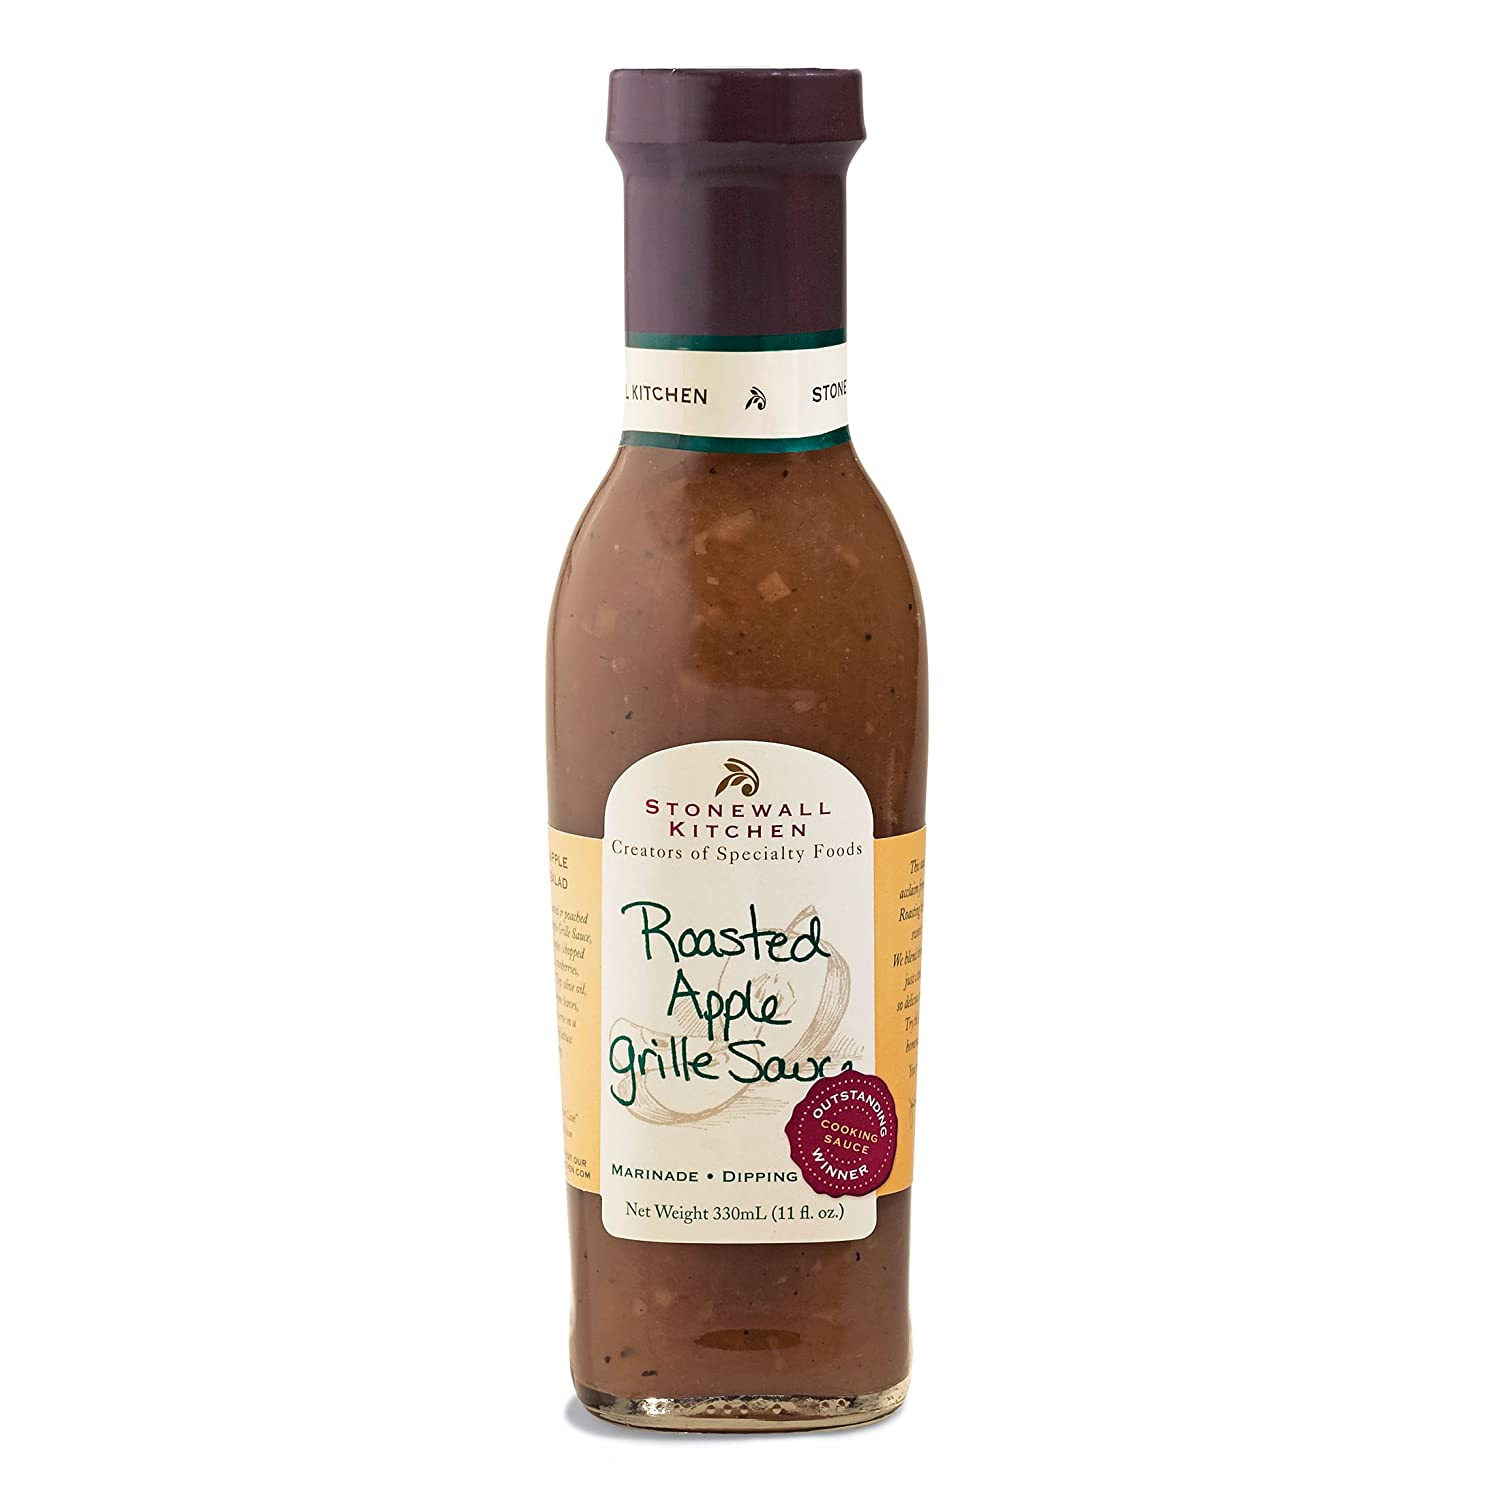 Stonewall Kitchen Roasted Apple Grille Sauce, 11 Ounces